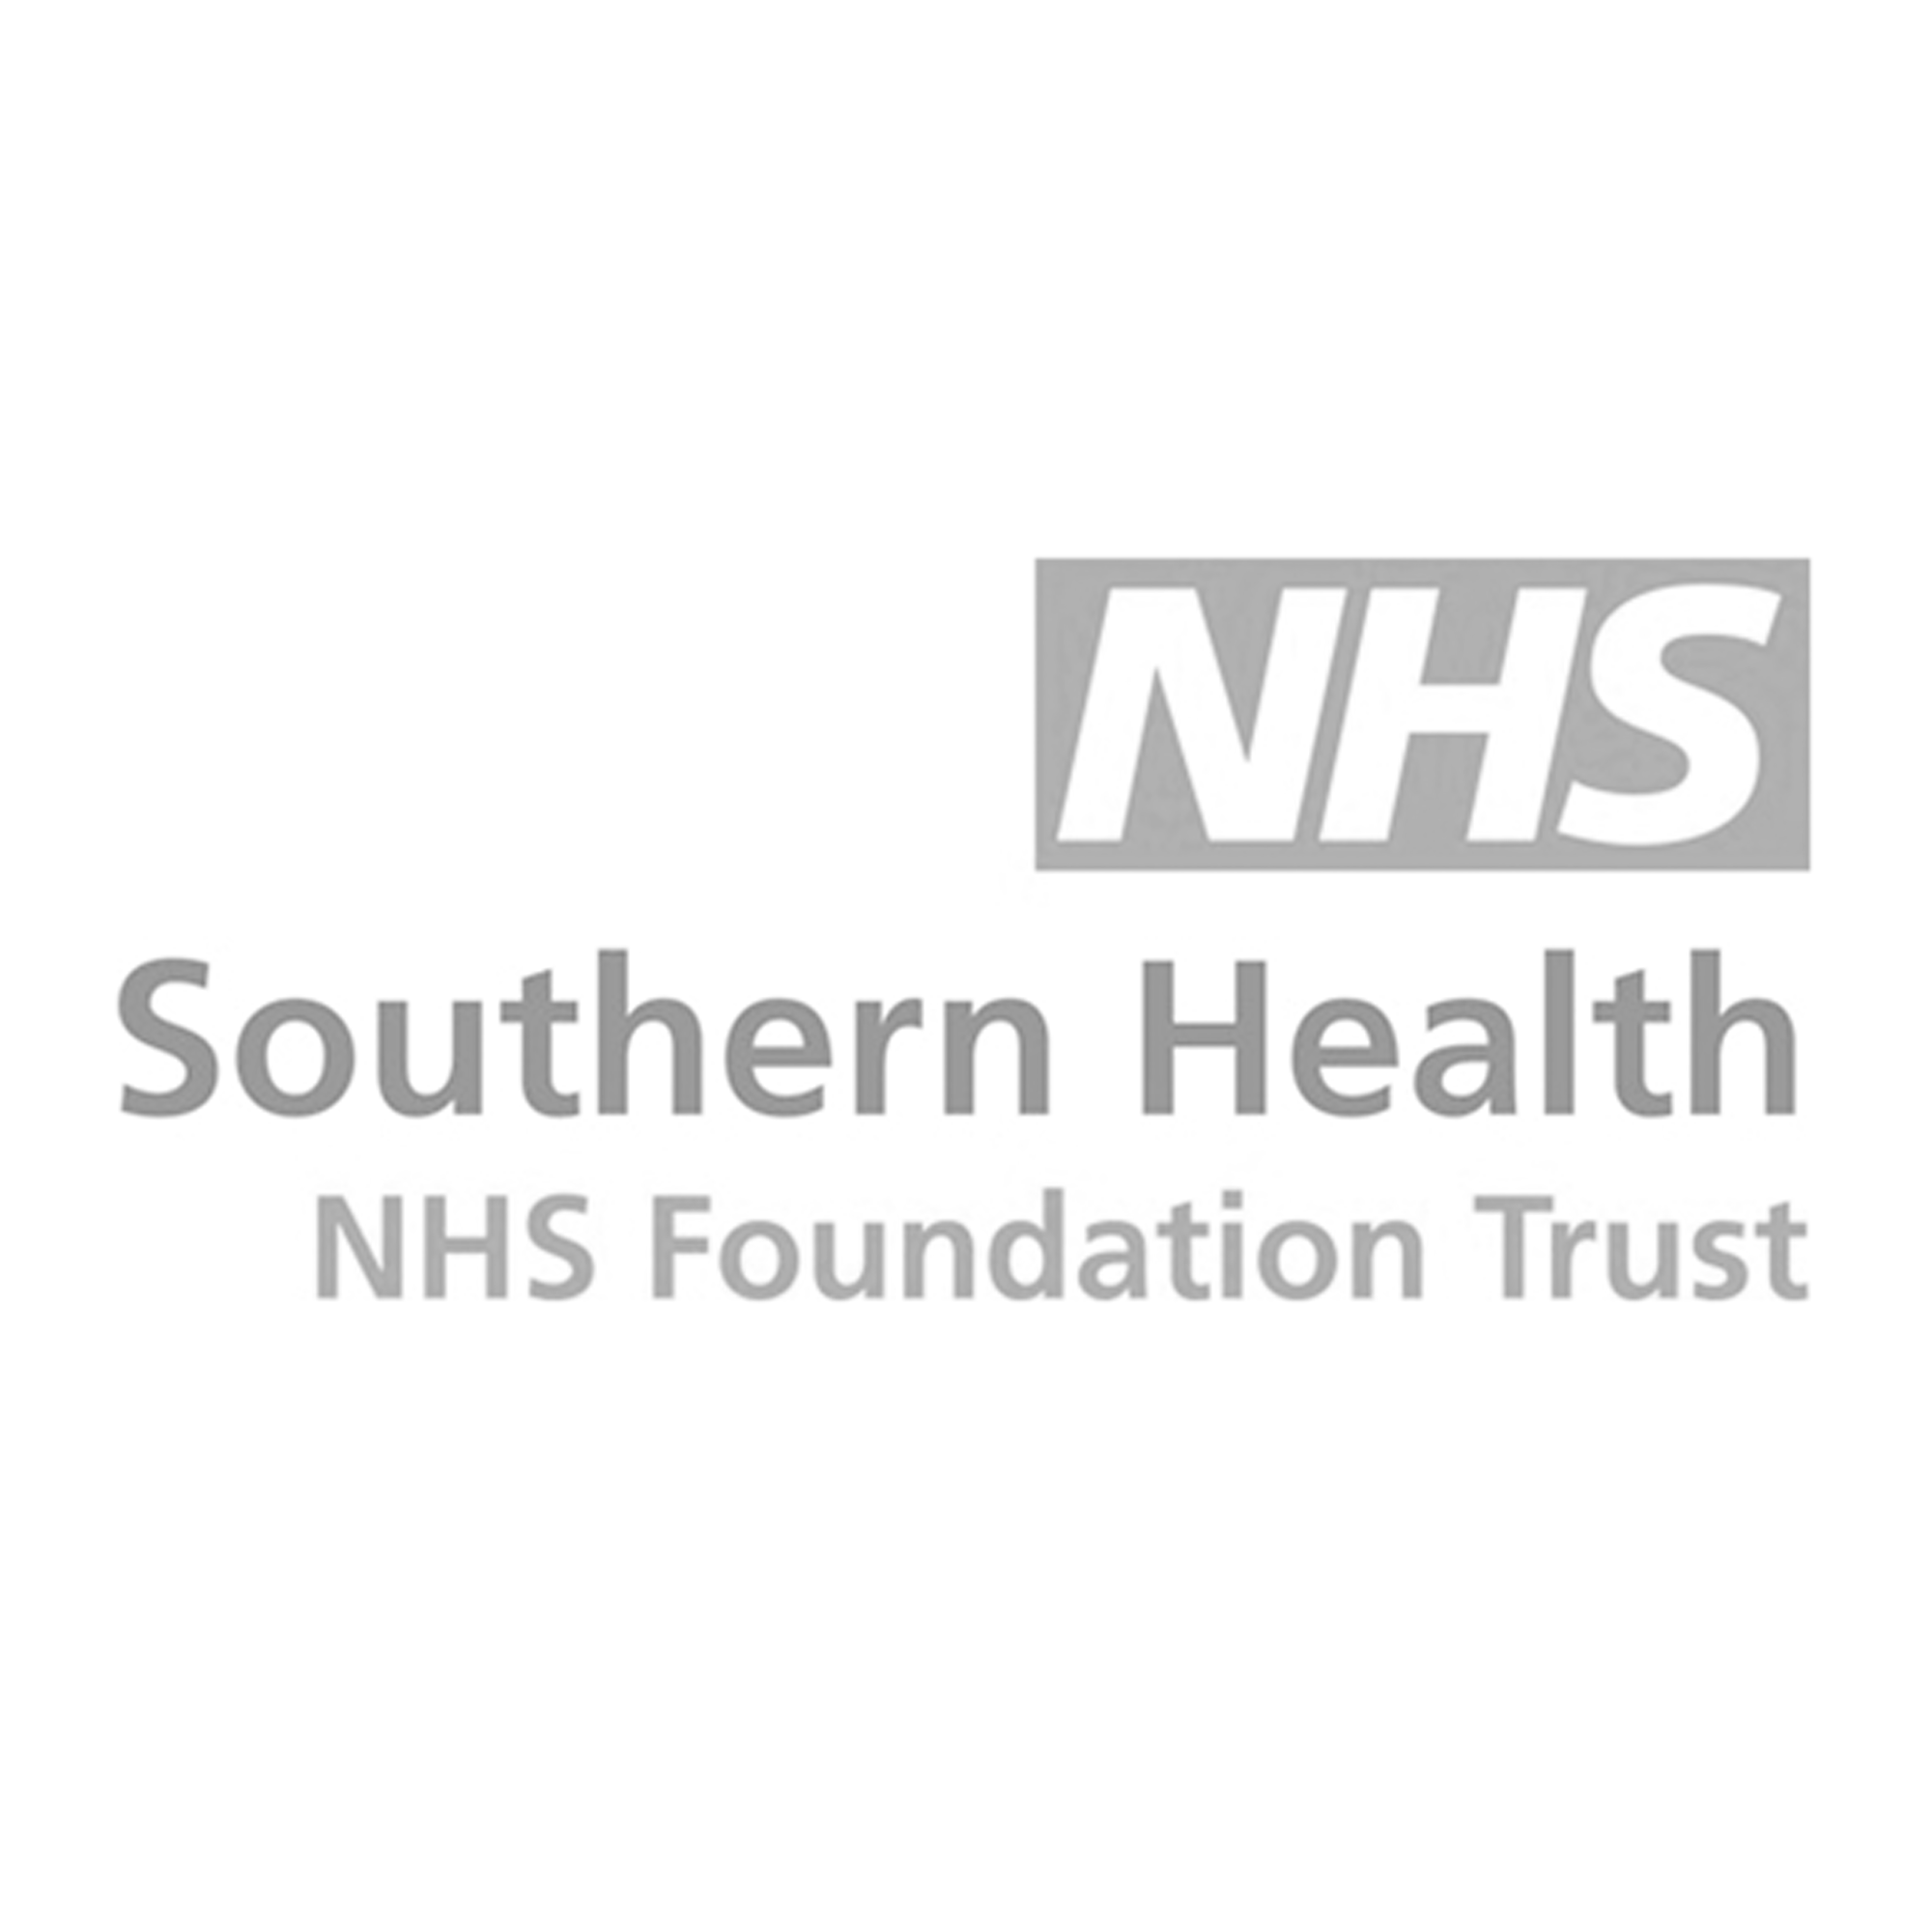 southern health logo black and white.png